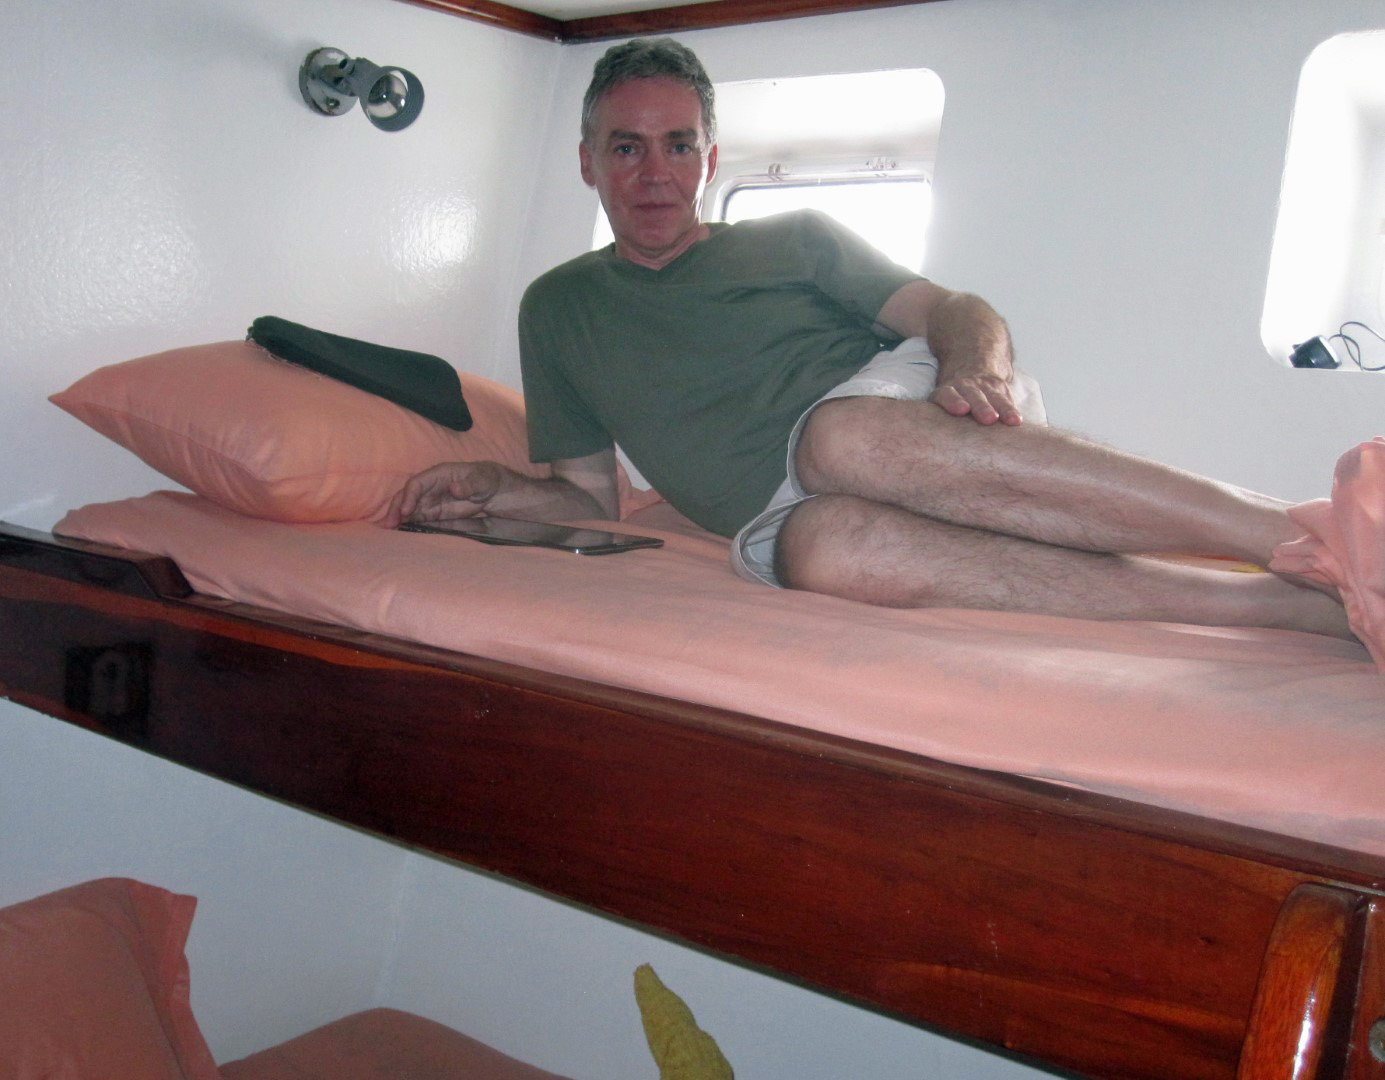 Man relaxing on a bunk bed